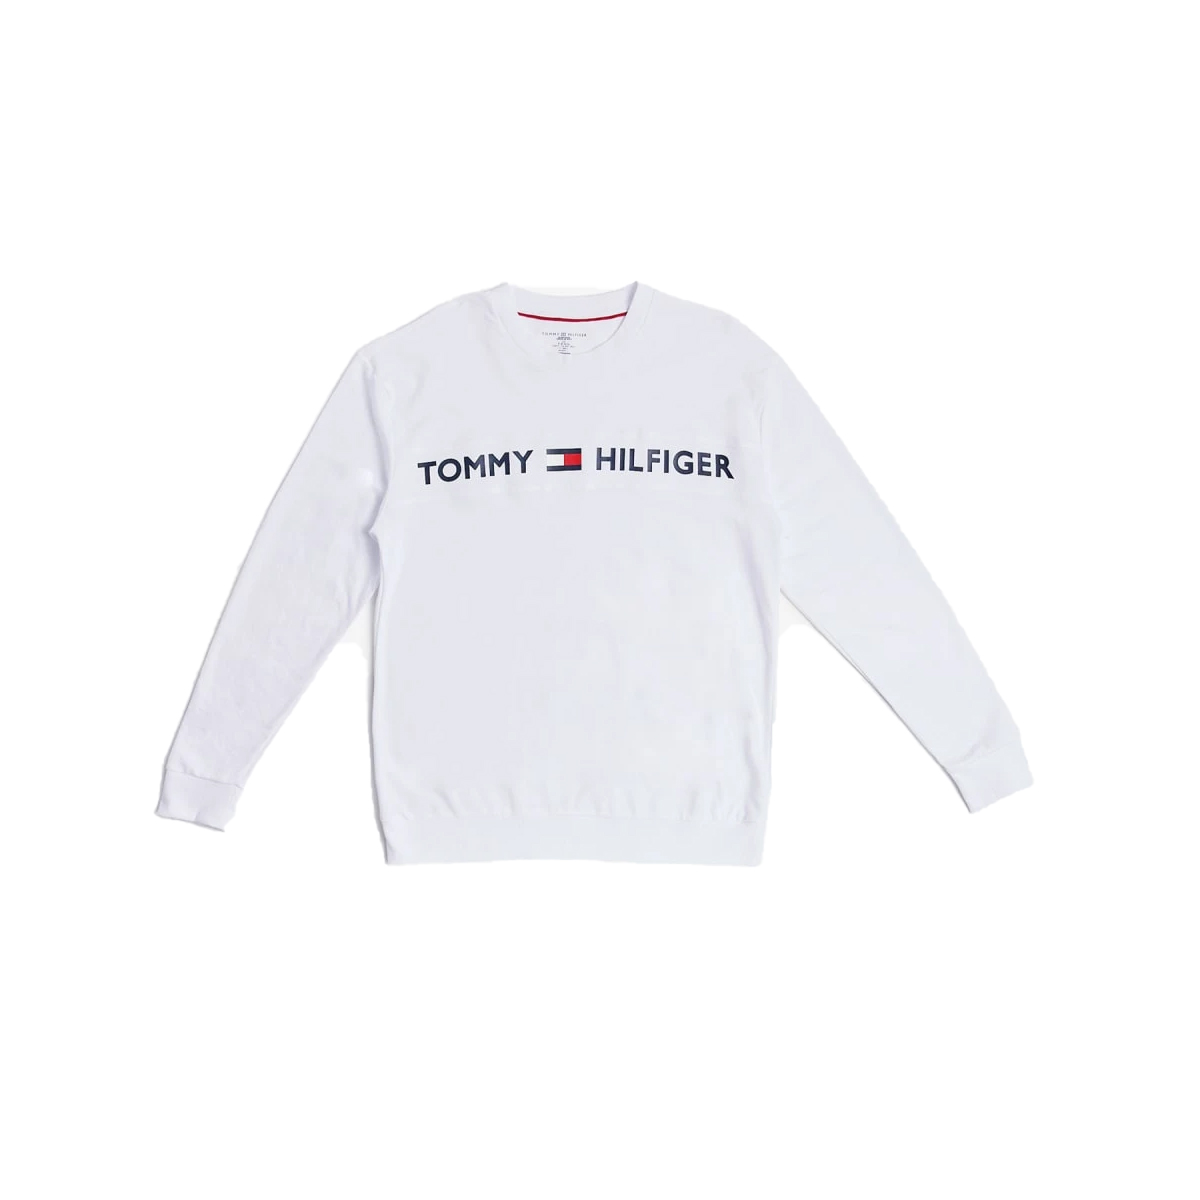 Men's Crewneck with Chest Text, White, swatch